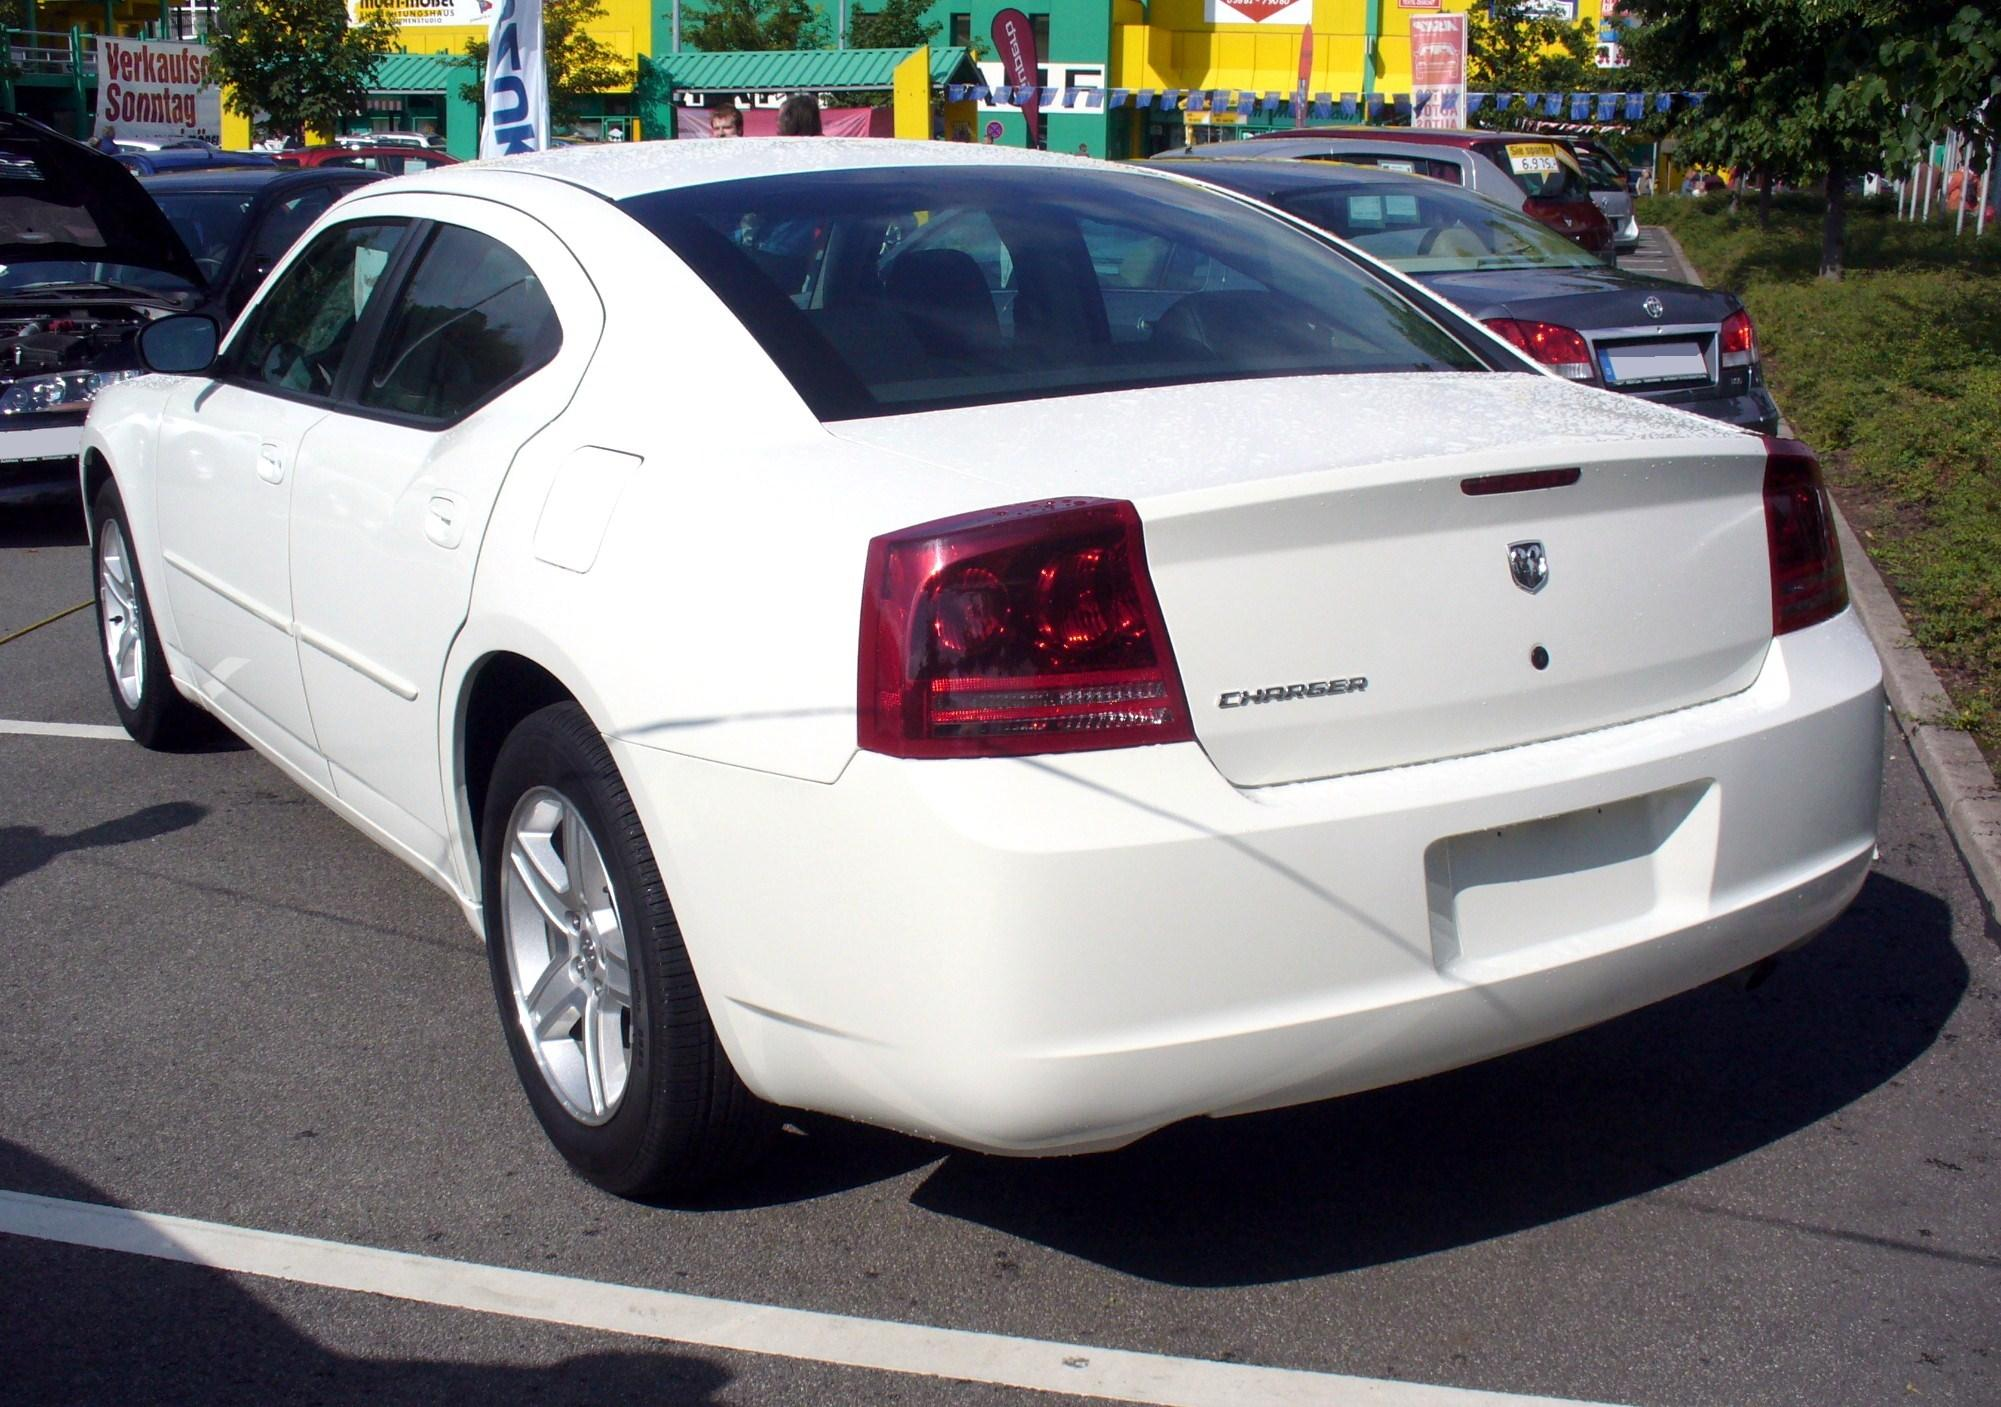 File:Dodge Charger Heck.JPG - Wikimedia Commons